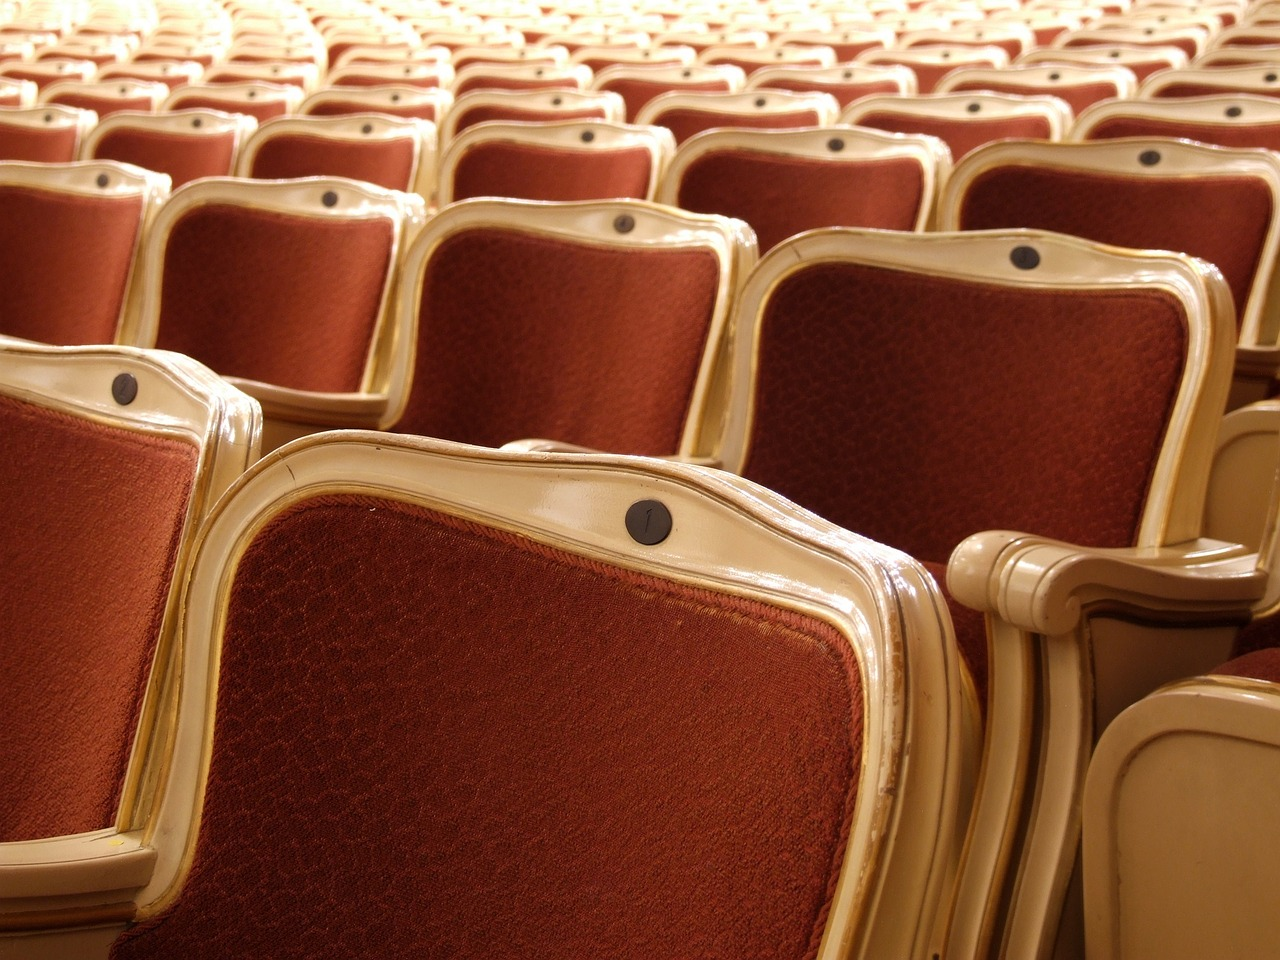 theater-seats-1033969_1280